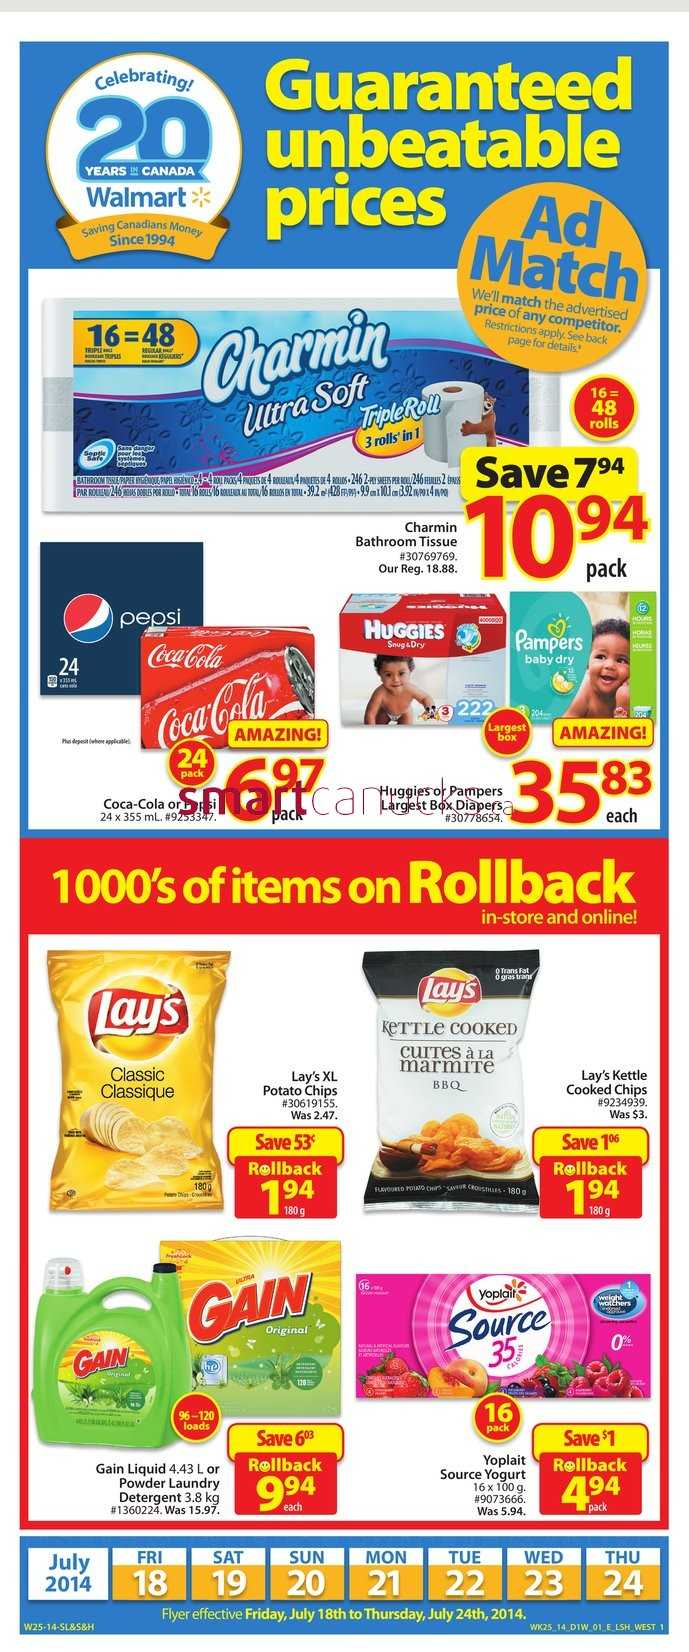 Printable grocery coupons walmart canada